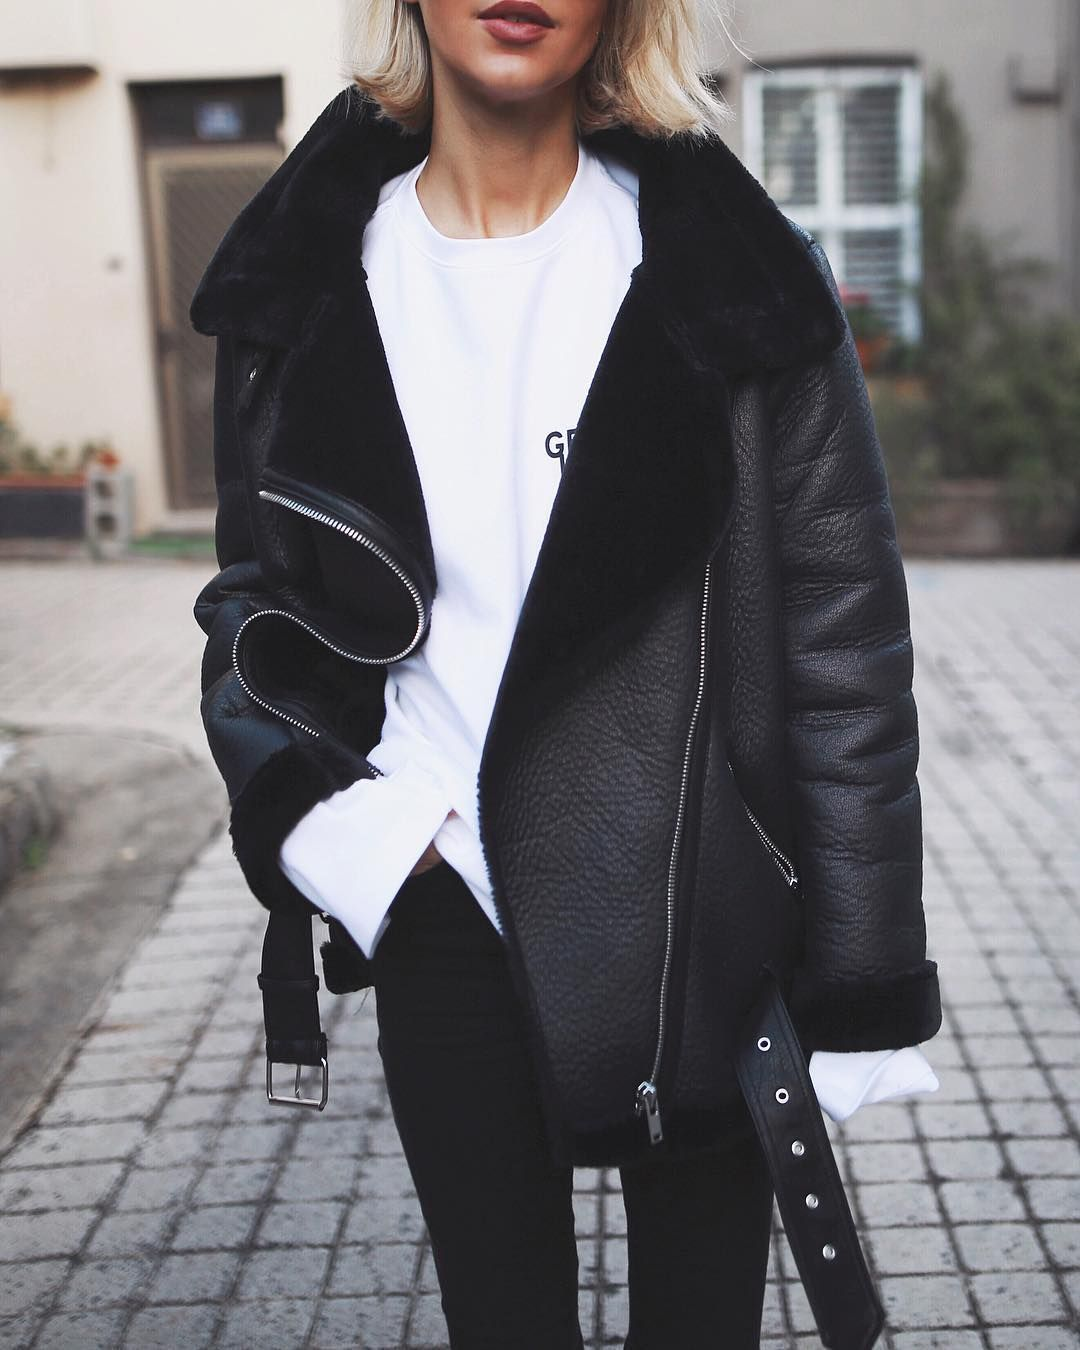 Petra On Instagram White Jumper By Ader Error Jeans Are Topshop Biker Jackets Biker Jackets Leather Bi Jacket Outfit Women Fashion Shearling Jacket Outfit [ 1350 x 1080 Pixel ]